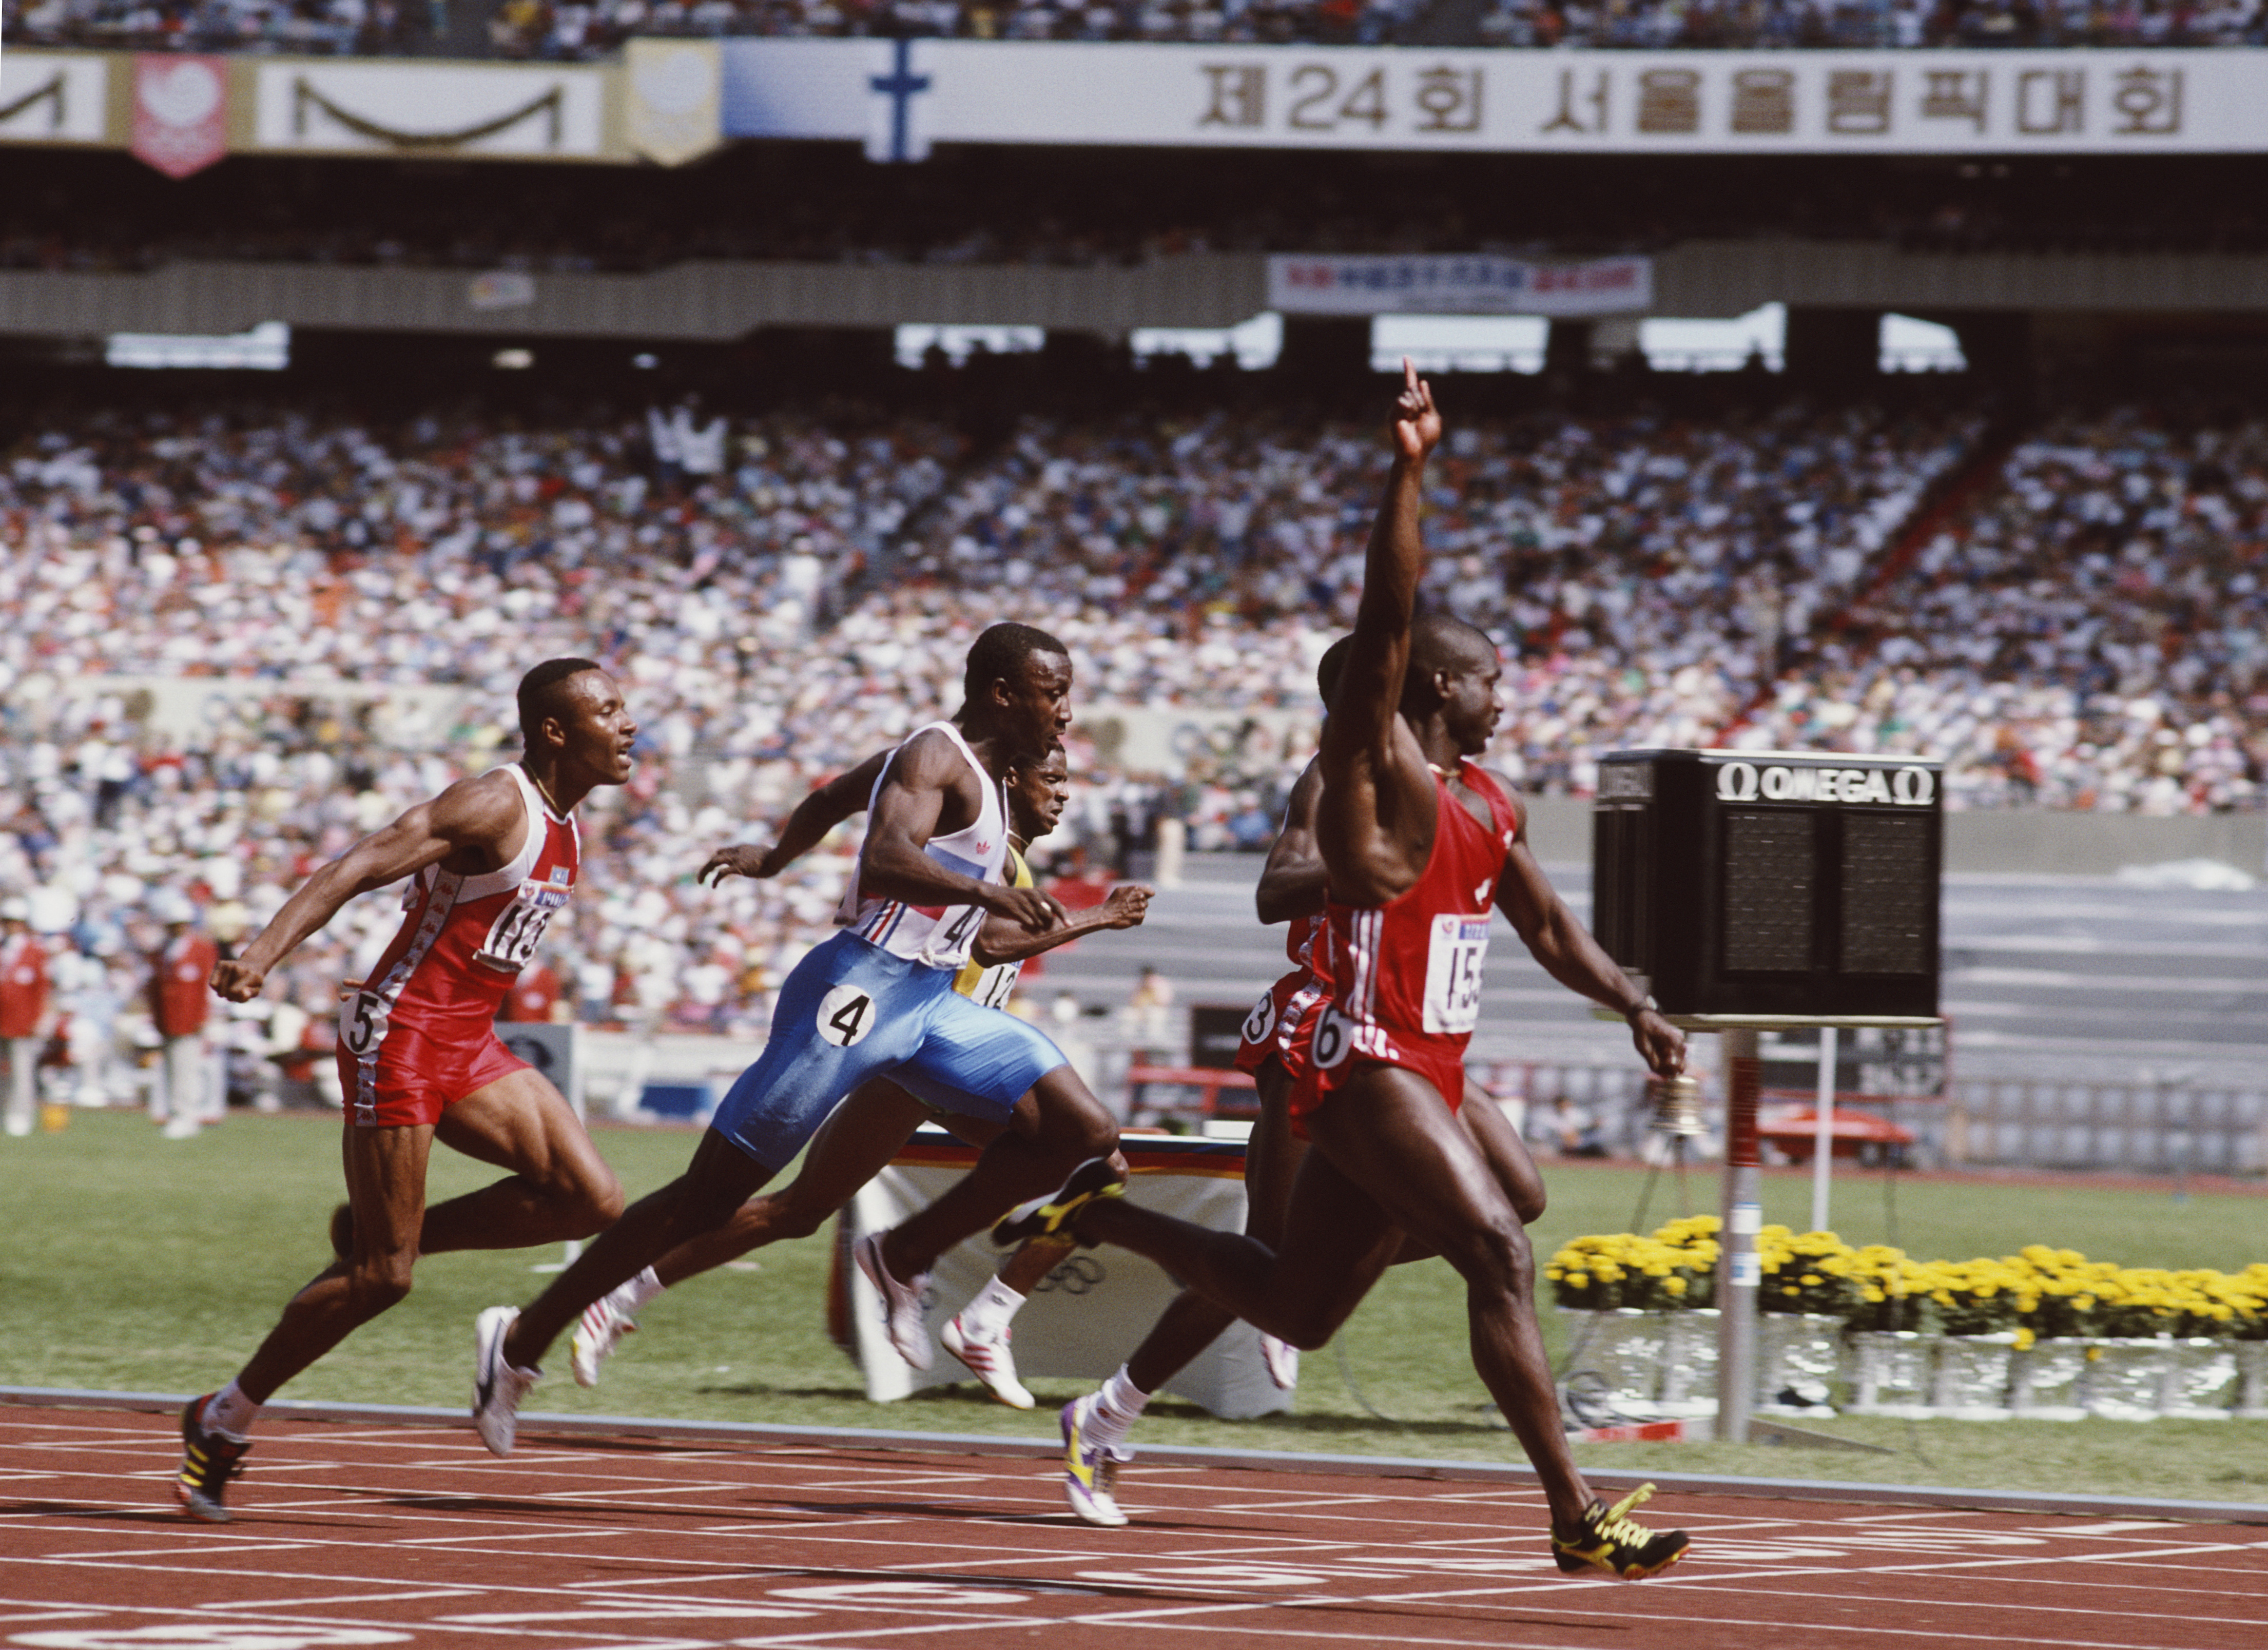 Ben Johnson of Canada celebrates winning gold in the Men's 100 metres final on 24 September 1988 during the XXIV Olympic Games at the Seoul Olympic Stadium in Seoul, South Korea. Ben Johnson was later disqualified for the illegal use of performance enhancing drugs.(Photo by David Cannon/Getty Images)